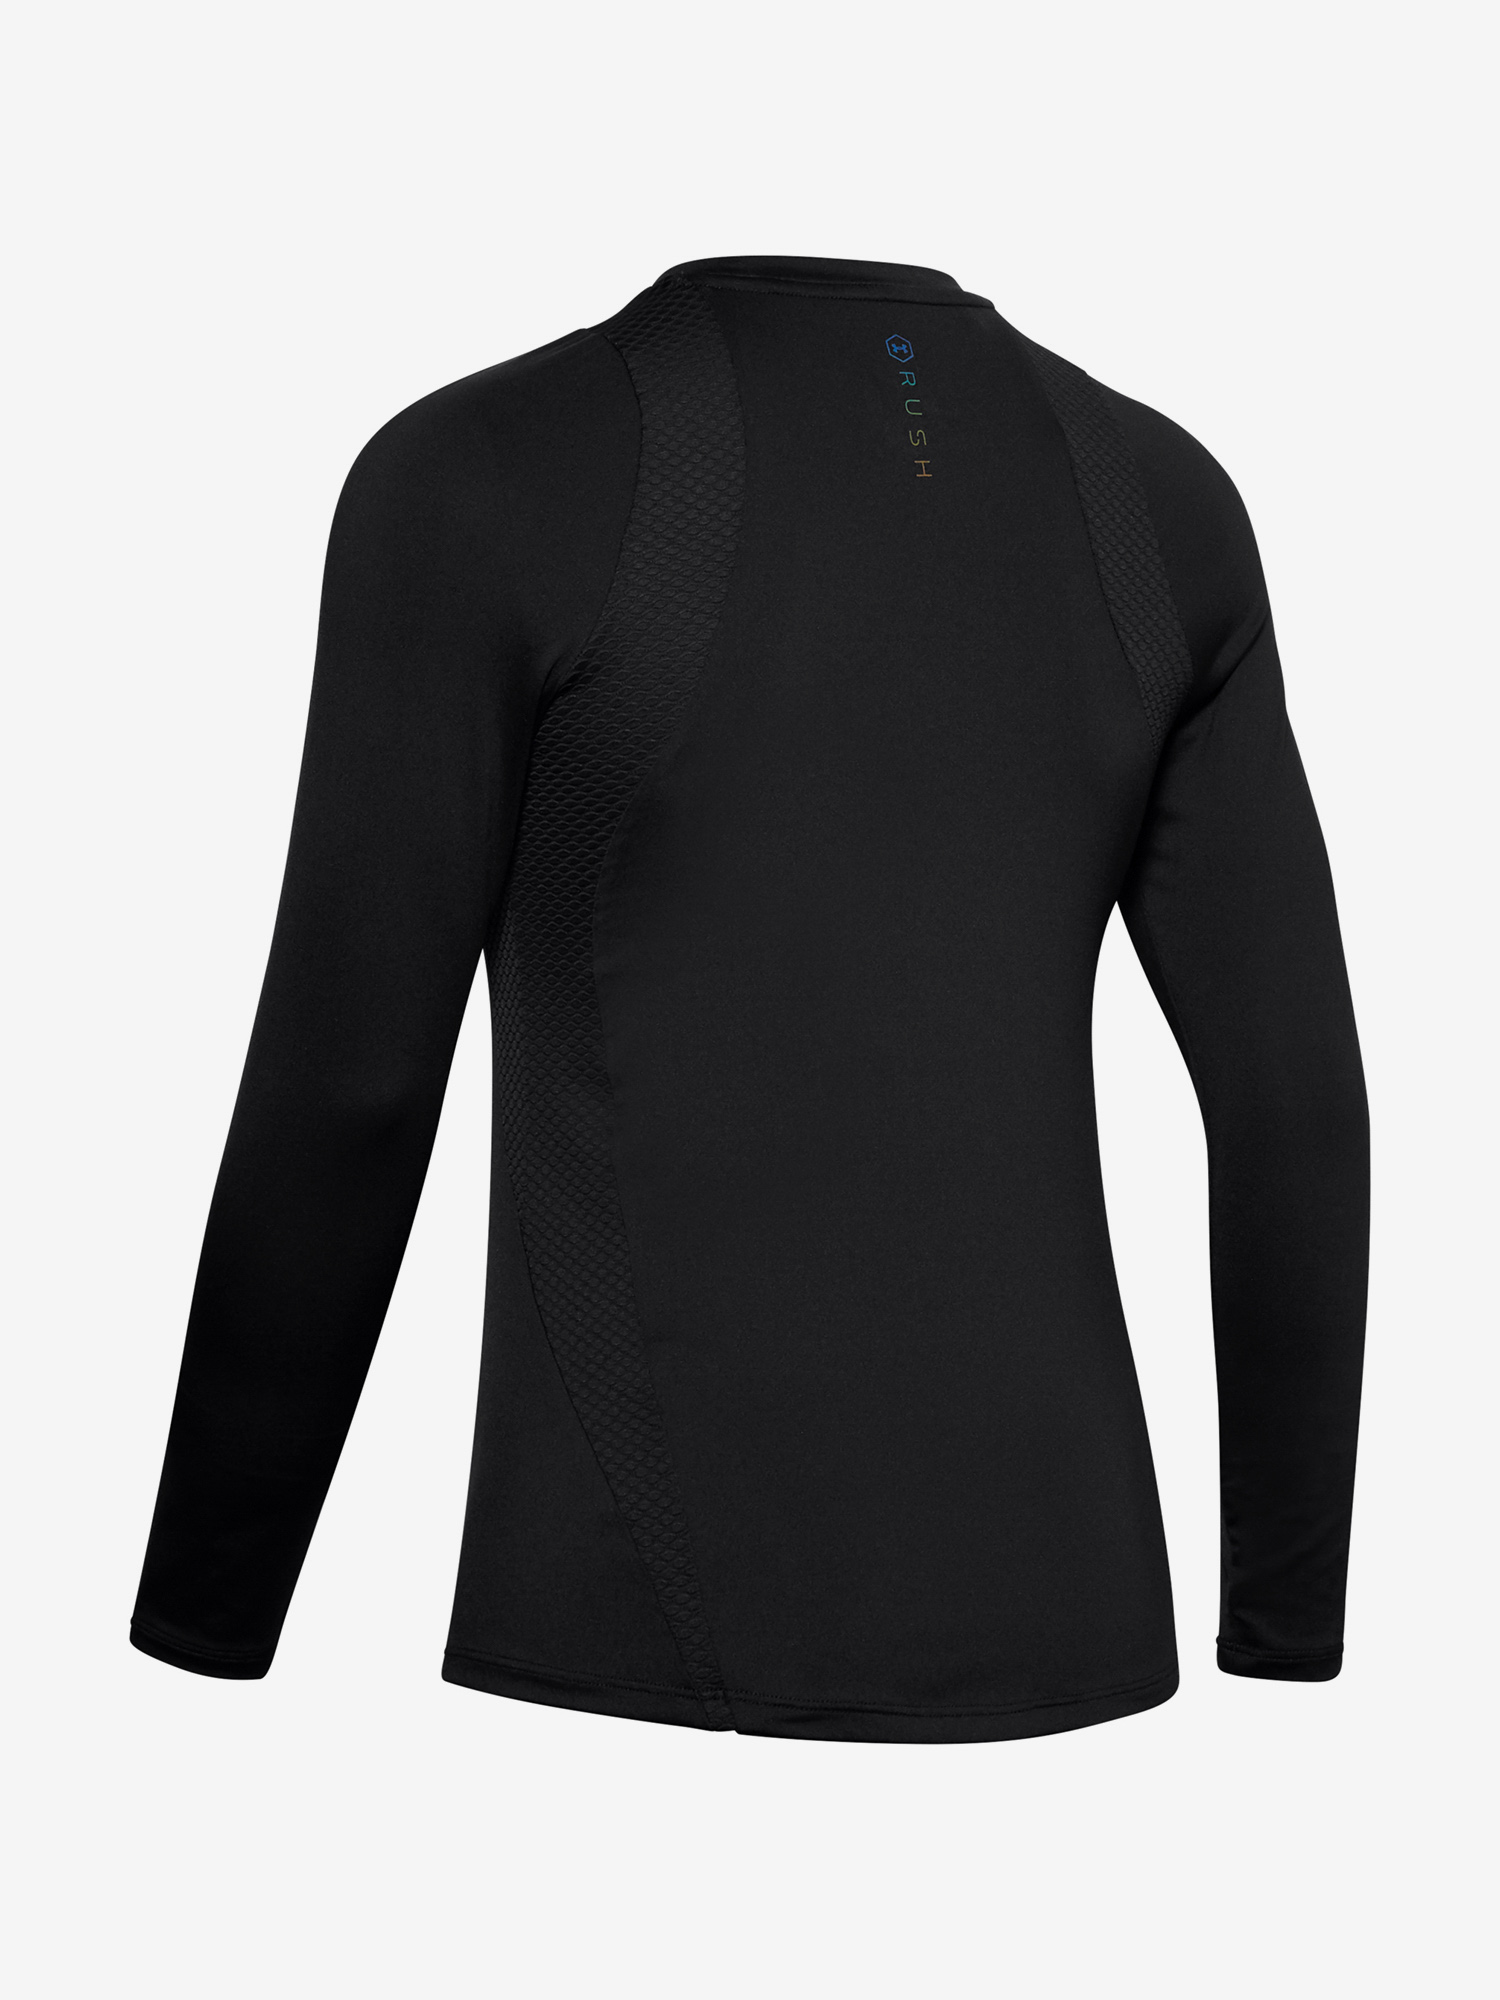 Tričko Under Armour Rush LS (4)